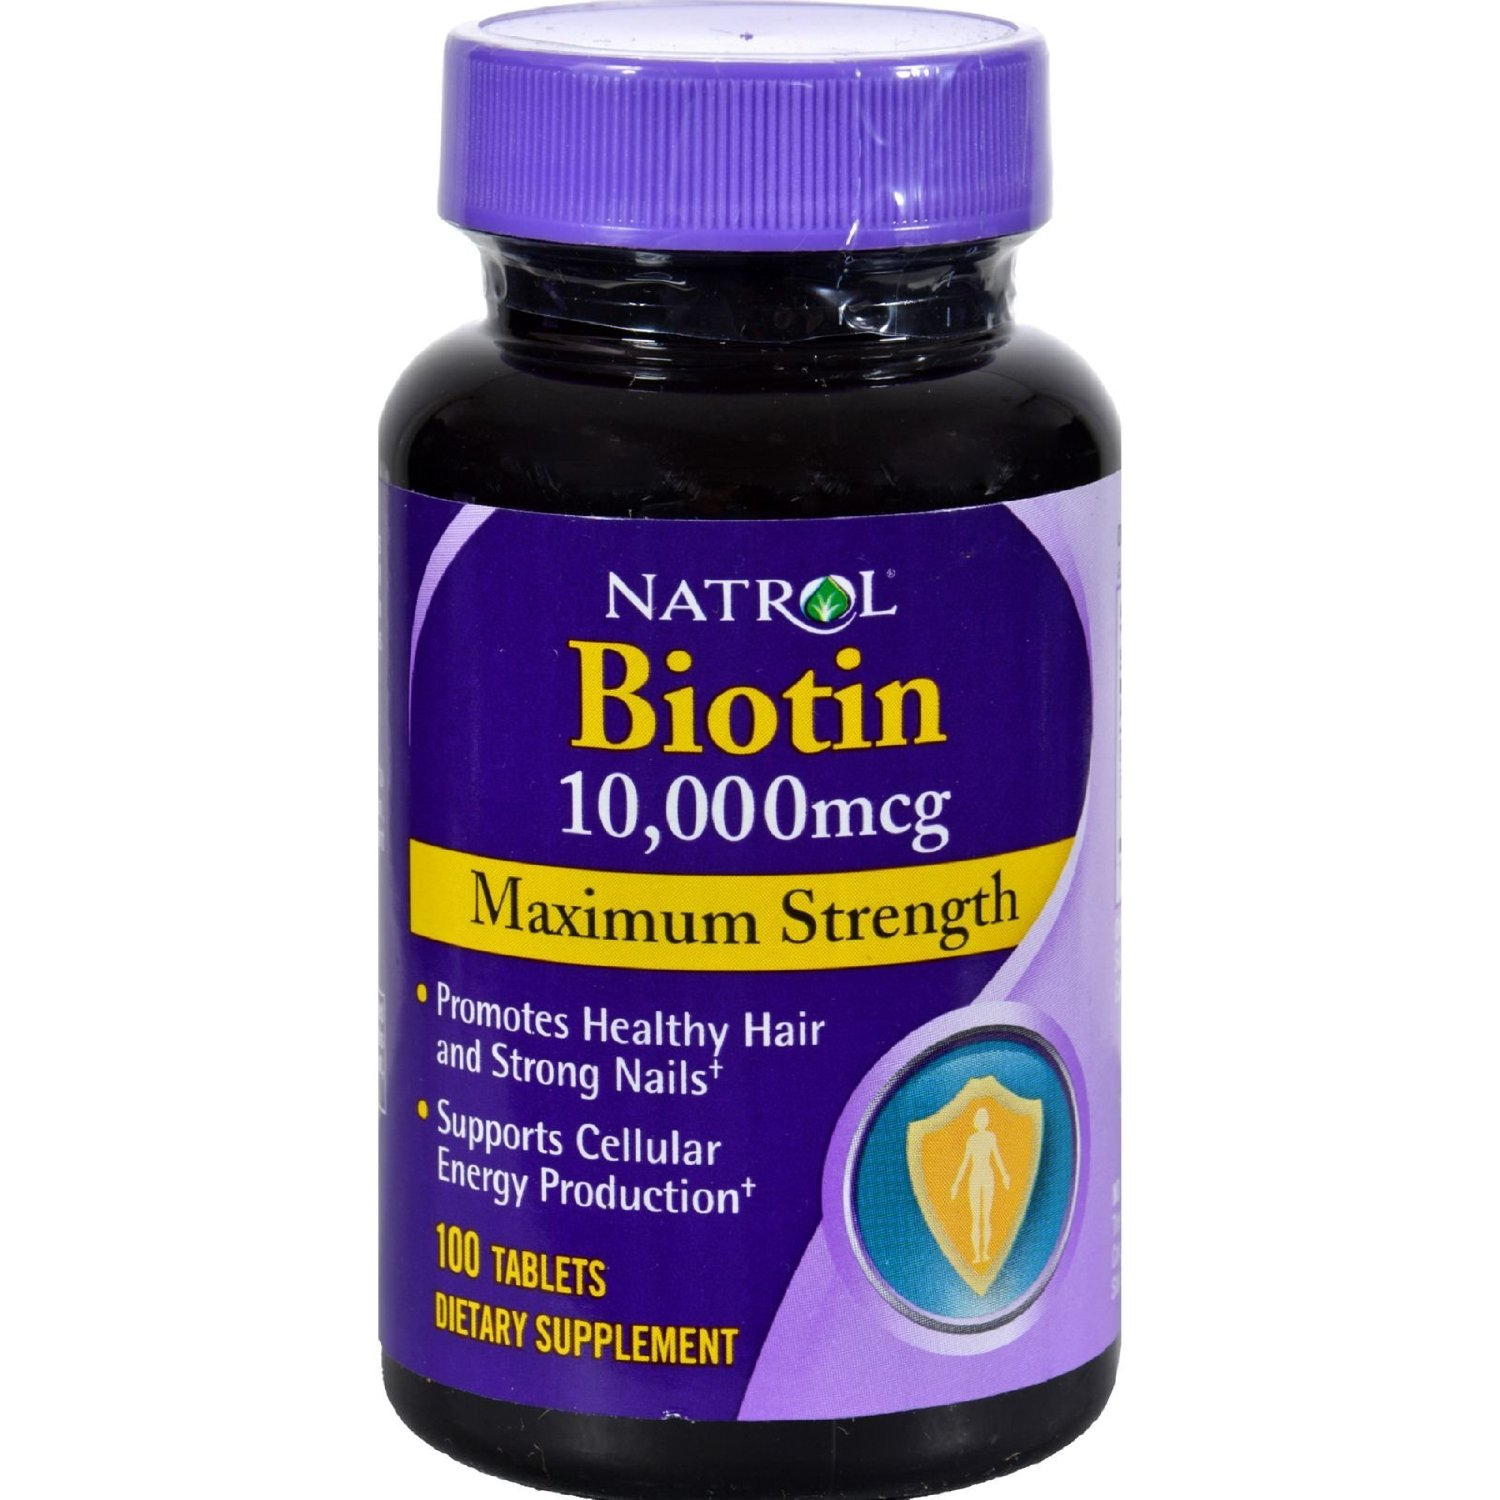 Natrol Biotin 10,000 mcg Maximum Strength Tablets (500 Max-Strength Tablets)